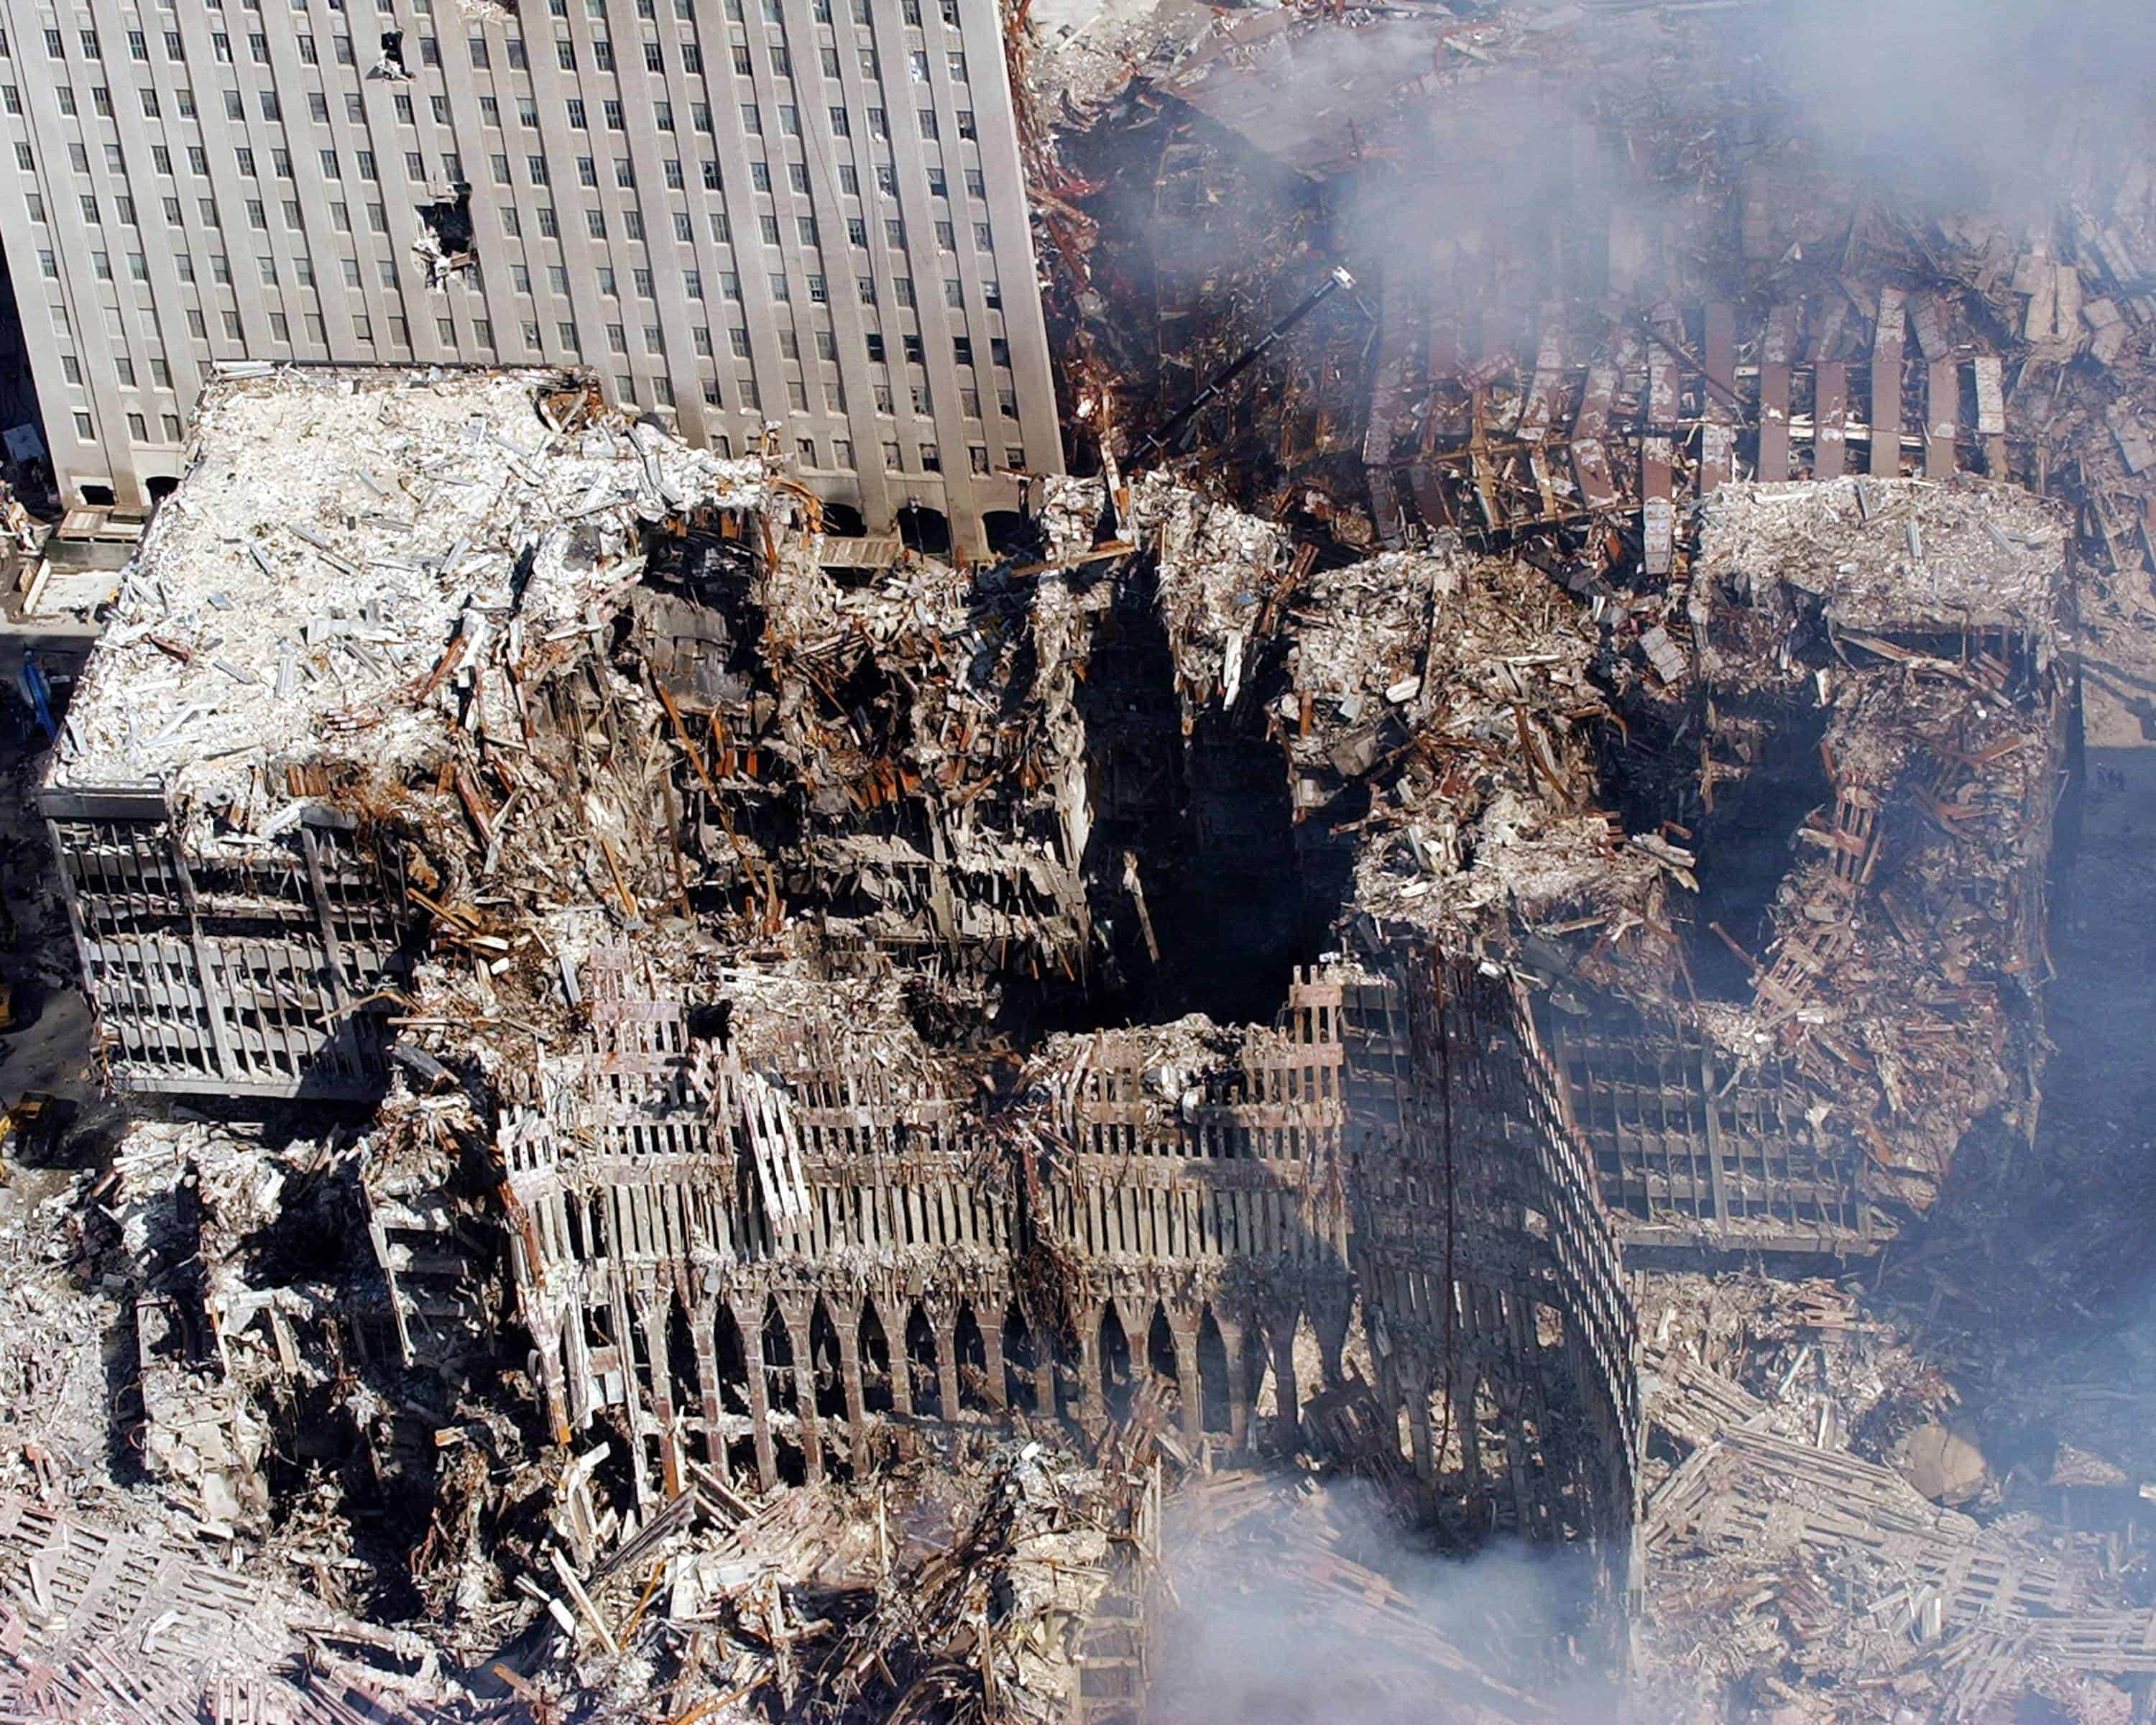 1993; WORLD TRADE CENTER BOMBING